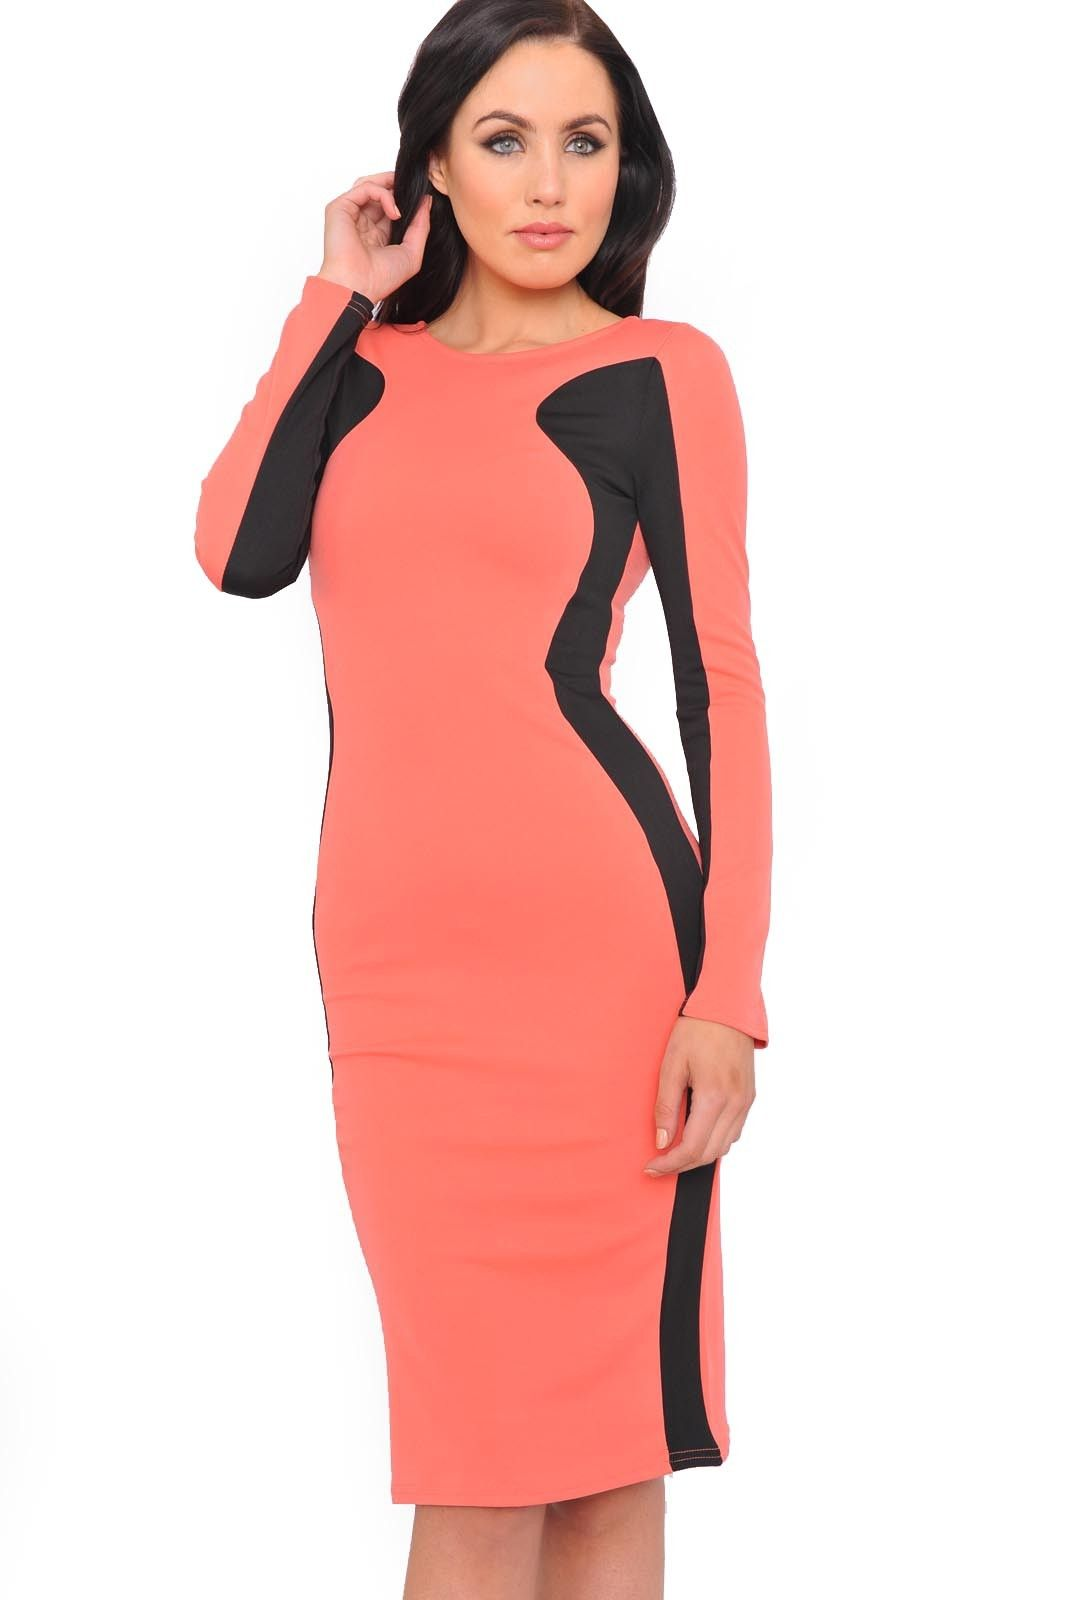 Glam up in style this season by slipping on this classic evening dress. With contrast panels and a bodycon style pencil skirt to really show off those curves. Team with ankle boots and an oversized clutch for ultimate glamour.